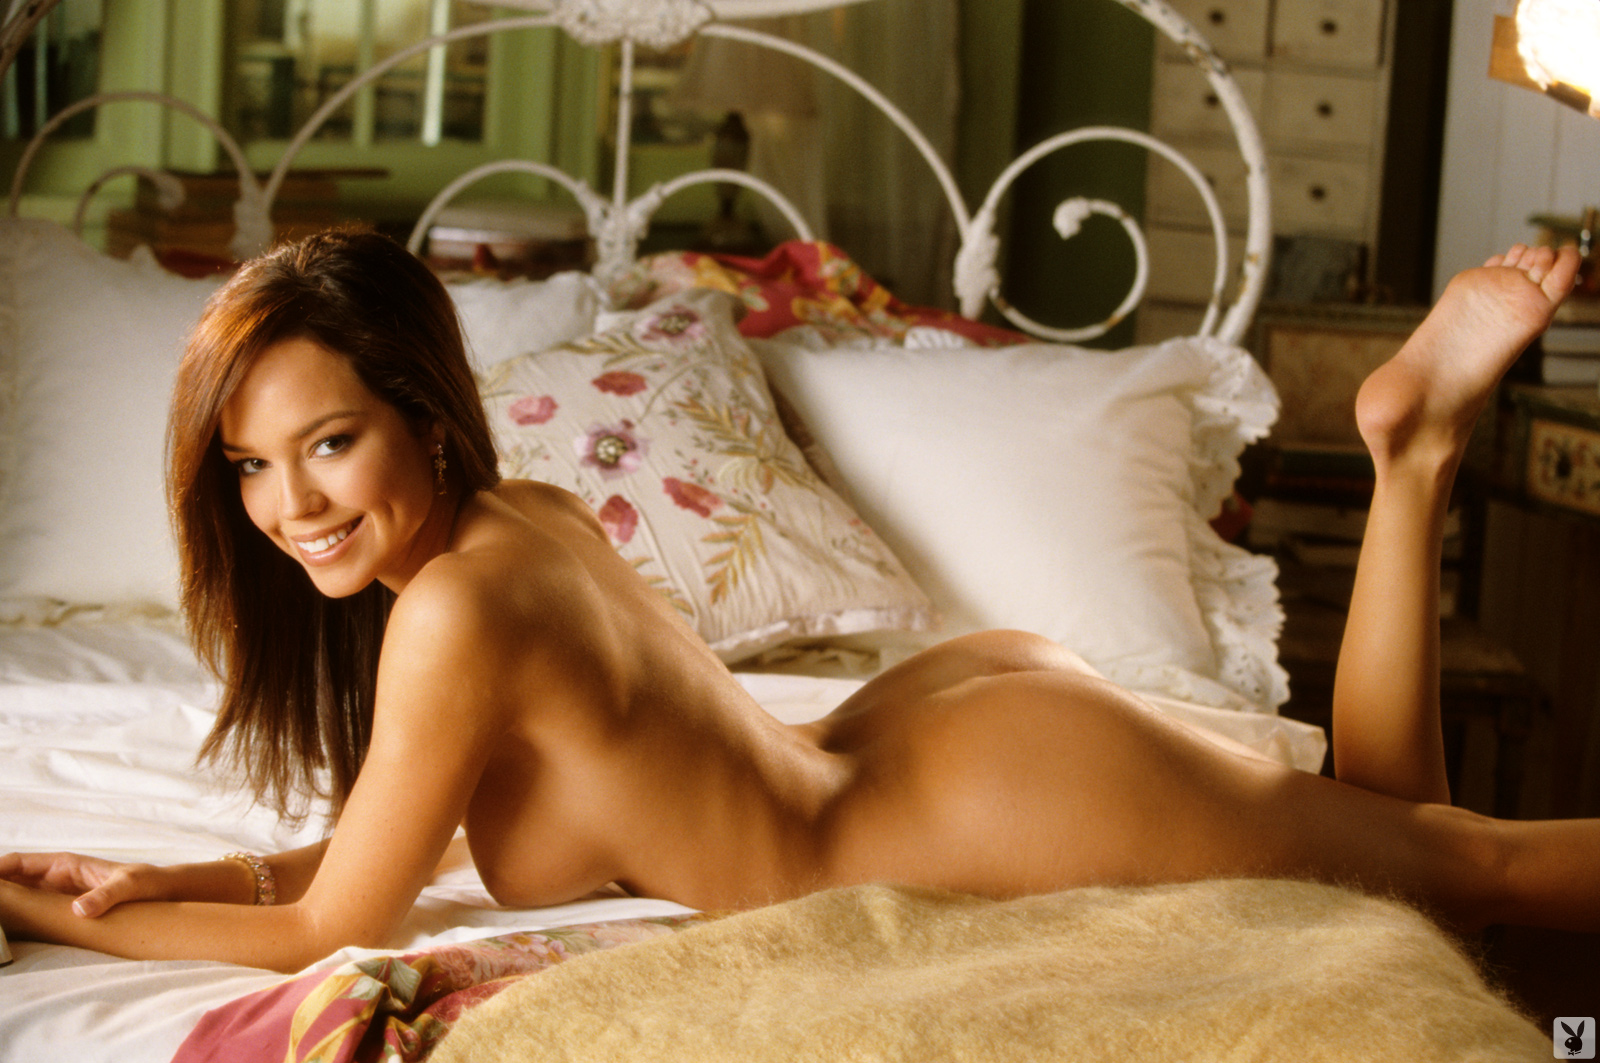 brittany-binger-bedroom-nude-playboy-25